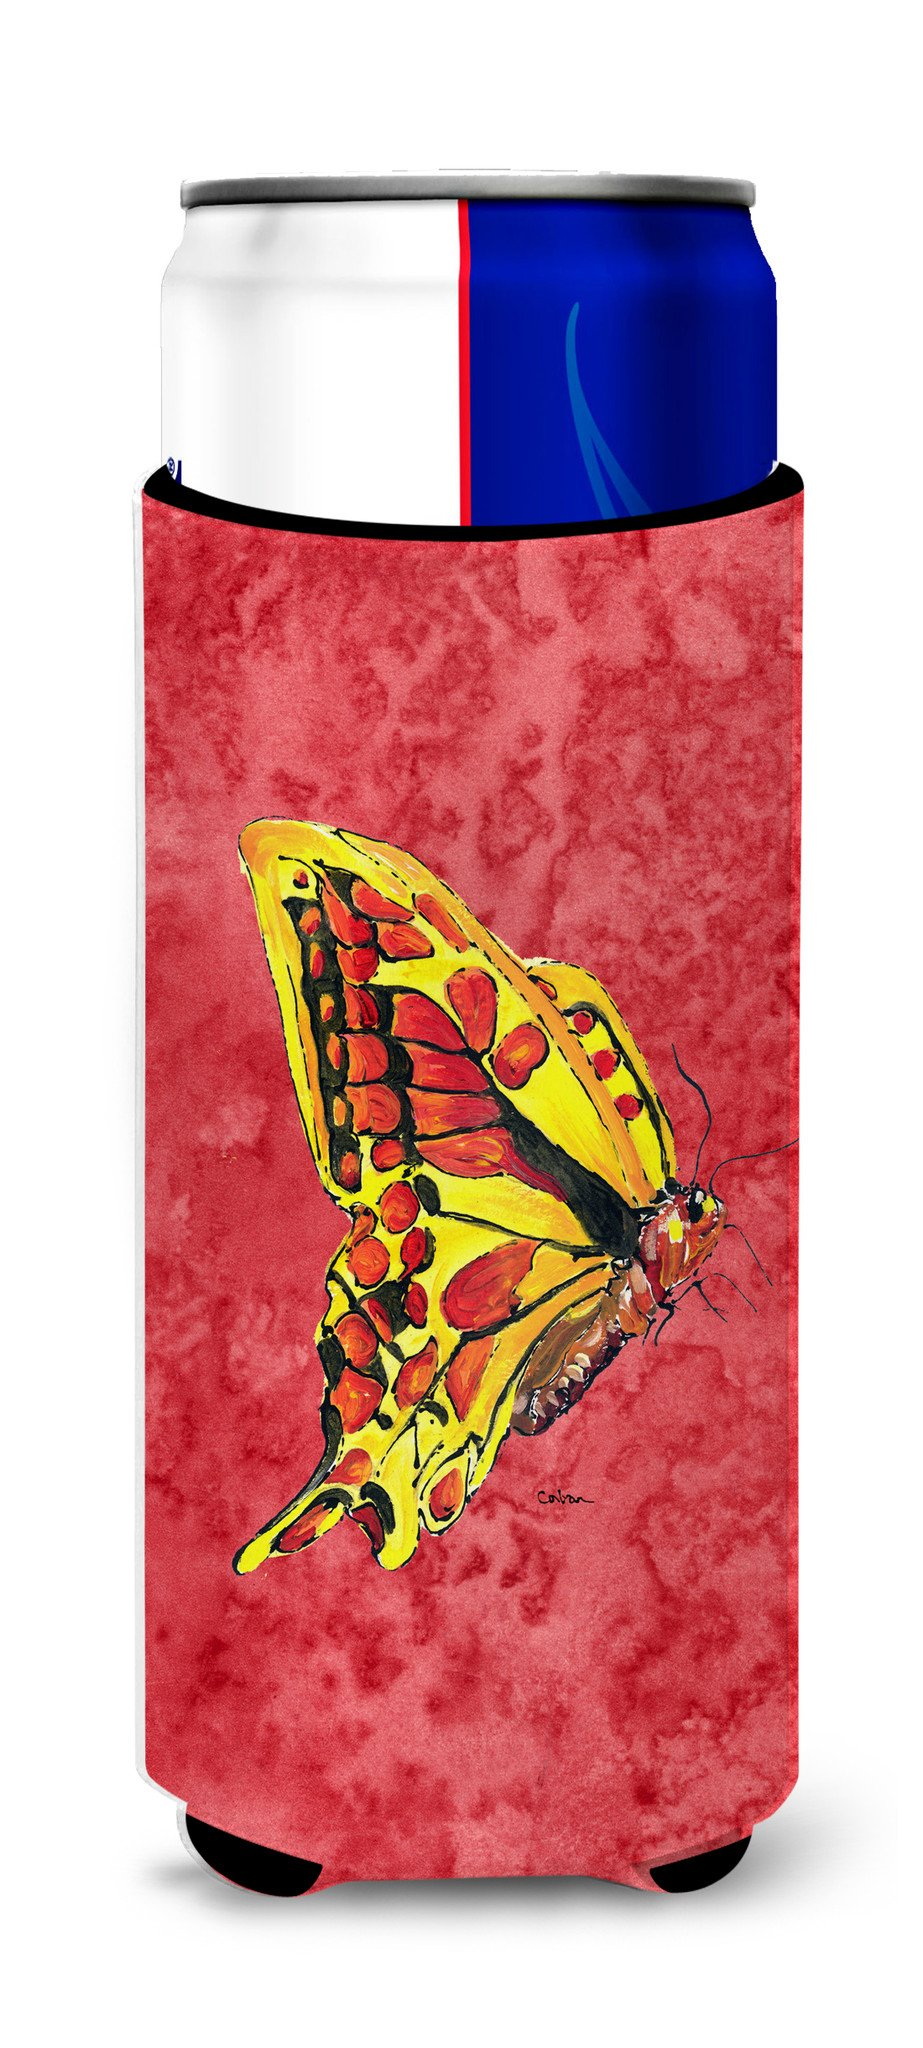 Butterfly on Red Ultra Beverage Insulators for slim cans 8862MUK by Caroline's Treasures